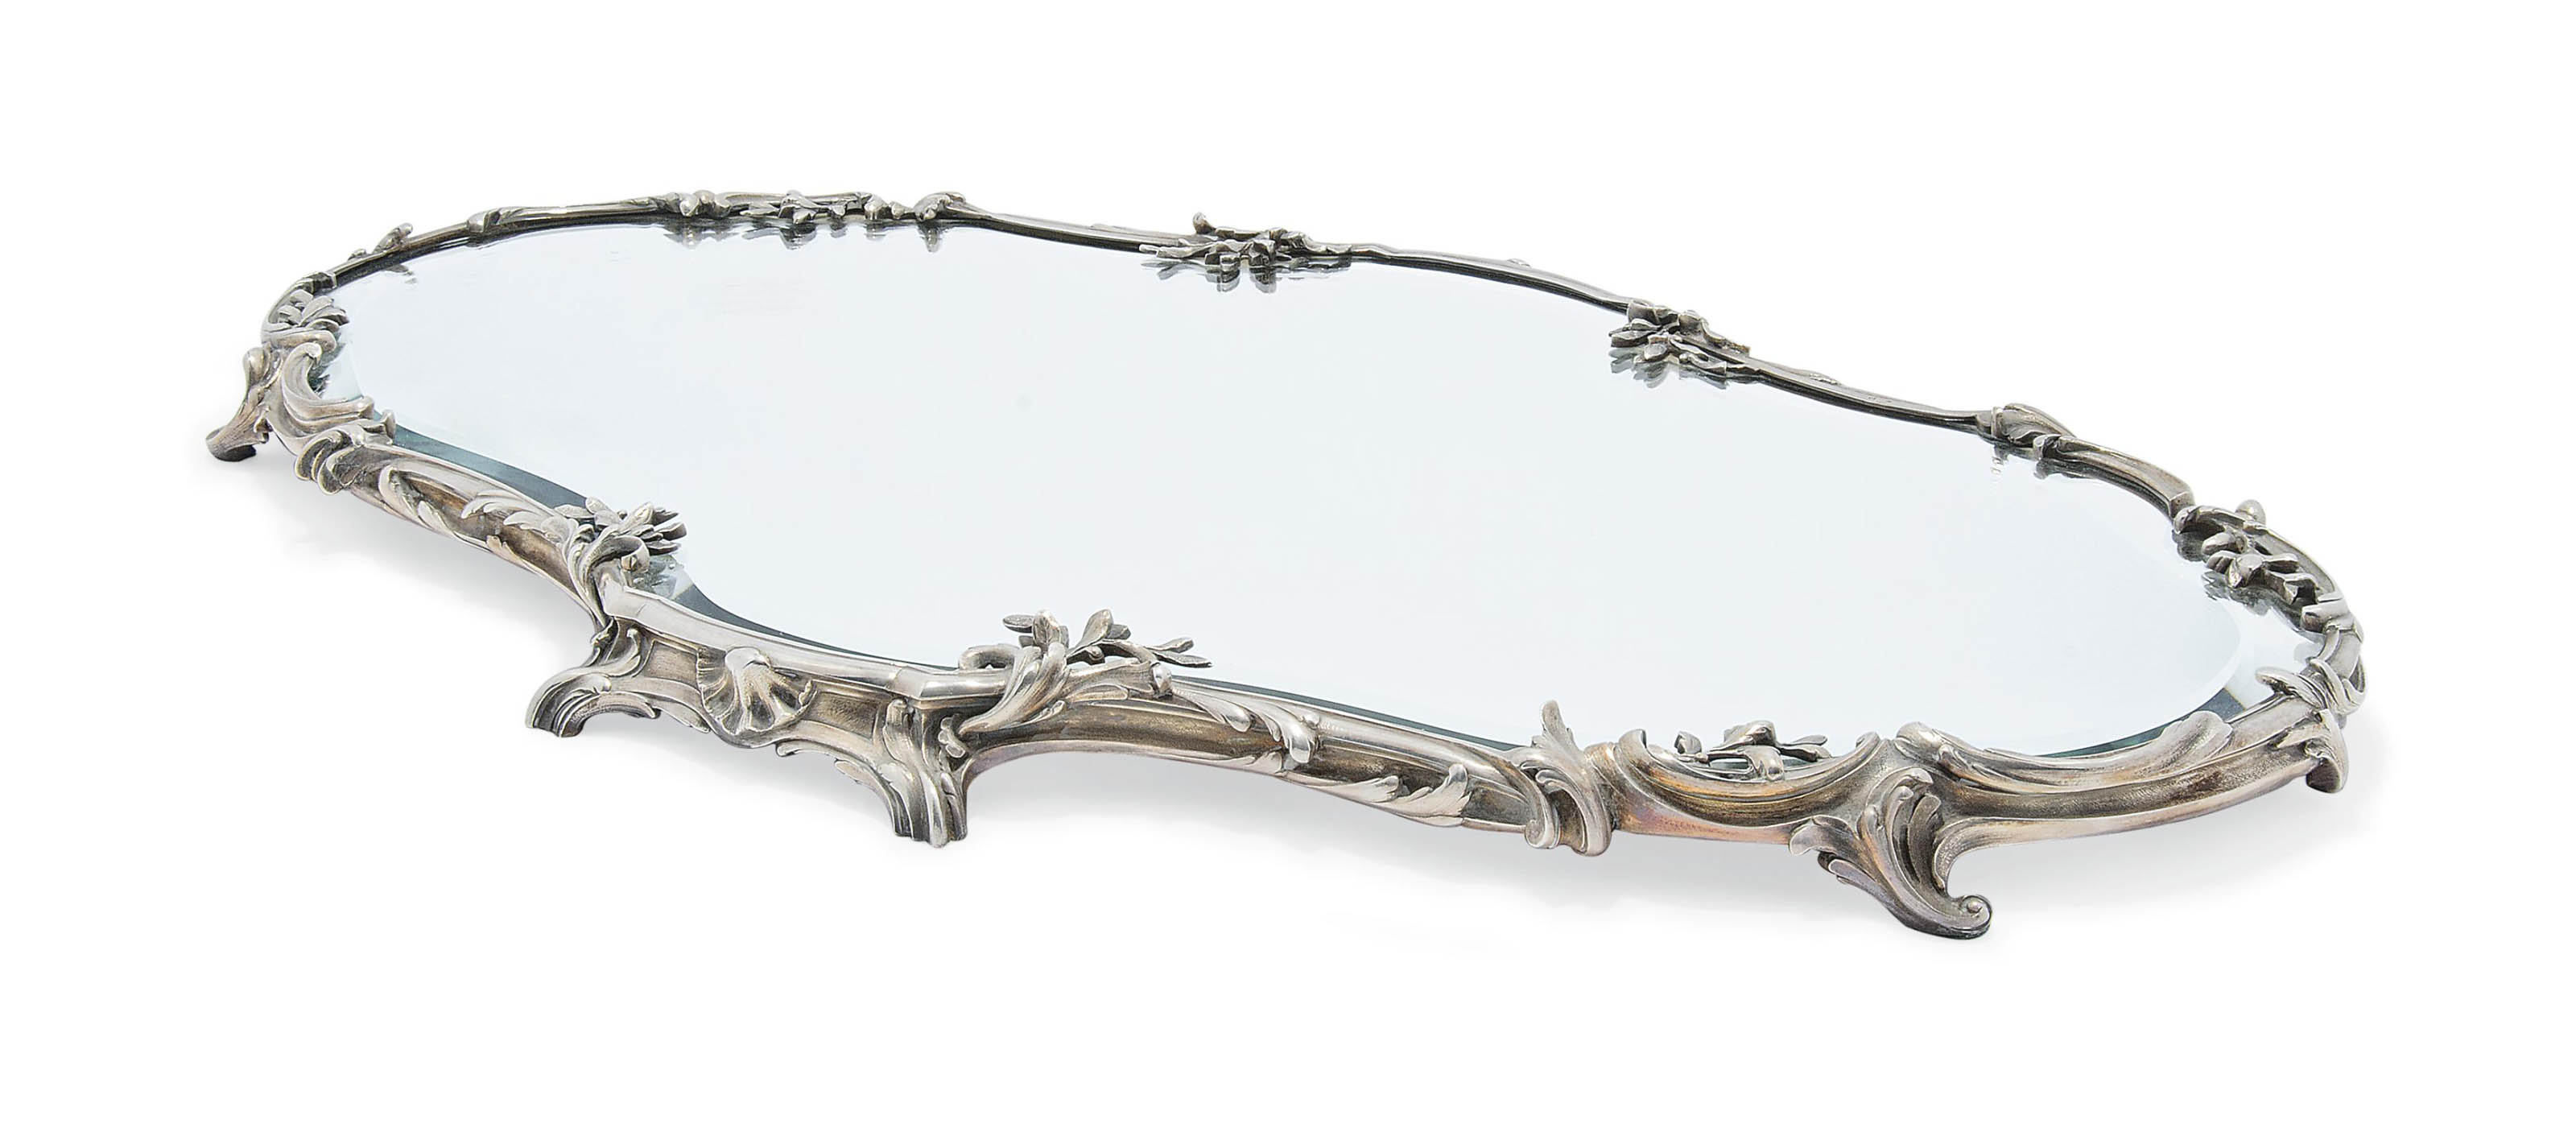 A BELGIAN SILVER-MOUNTED MIRROR PLATEAU